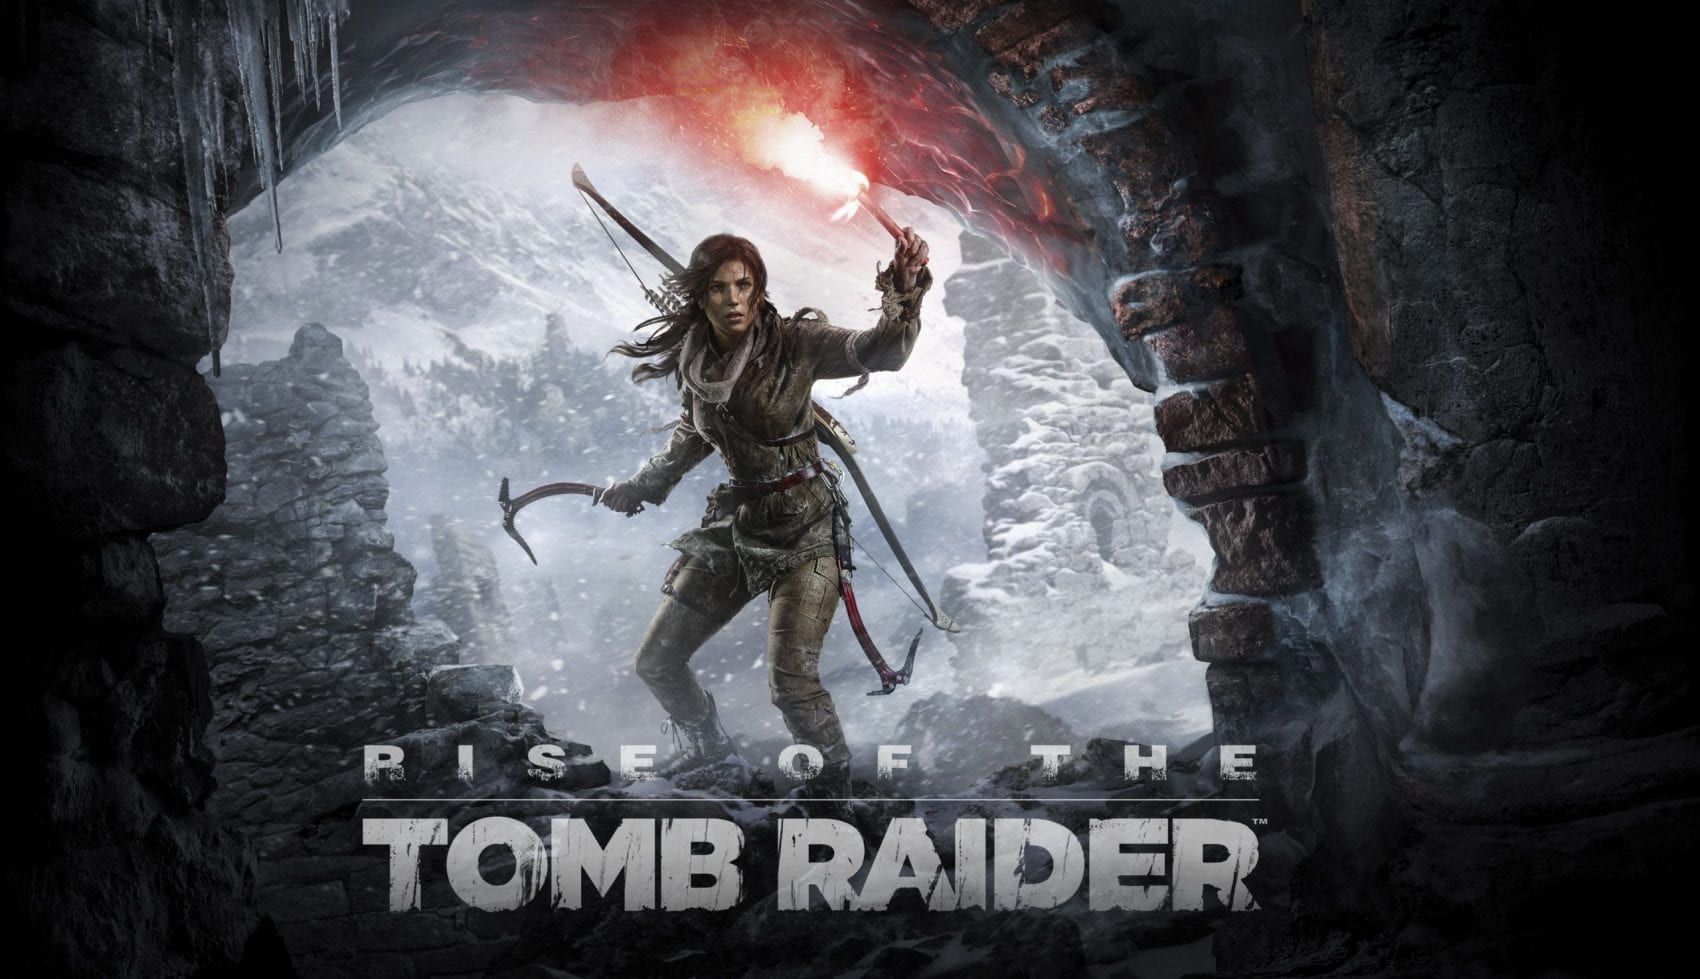 TRAILER – Rise Of the Tomb Raider